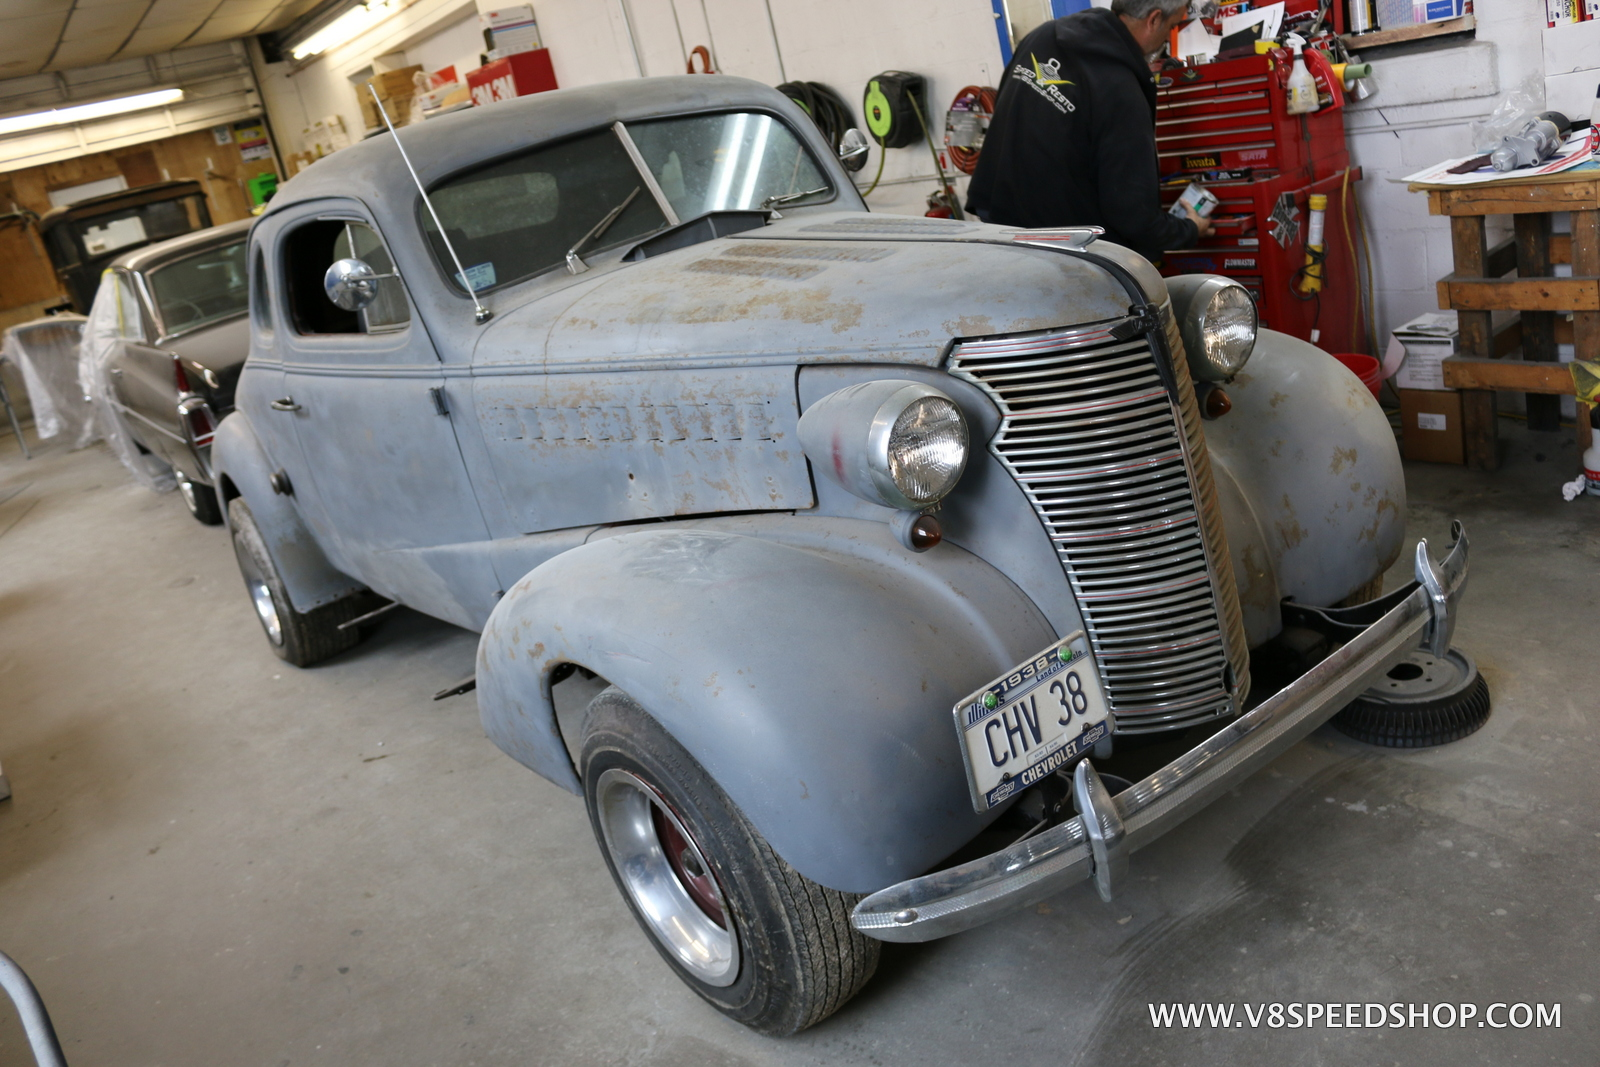 1938 Chevrolet Coupe Restoration Photo Galleries